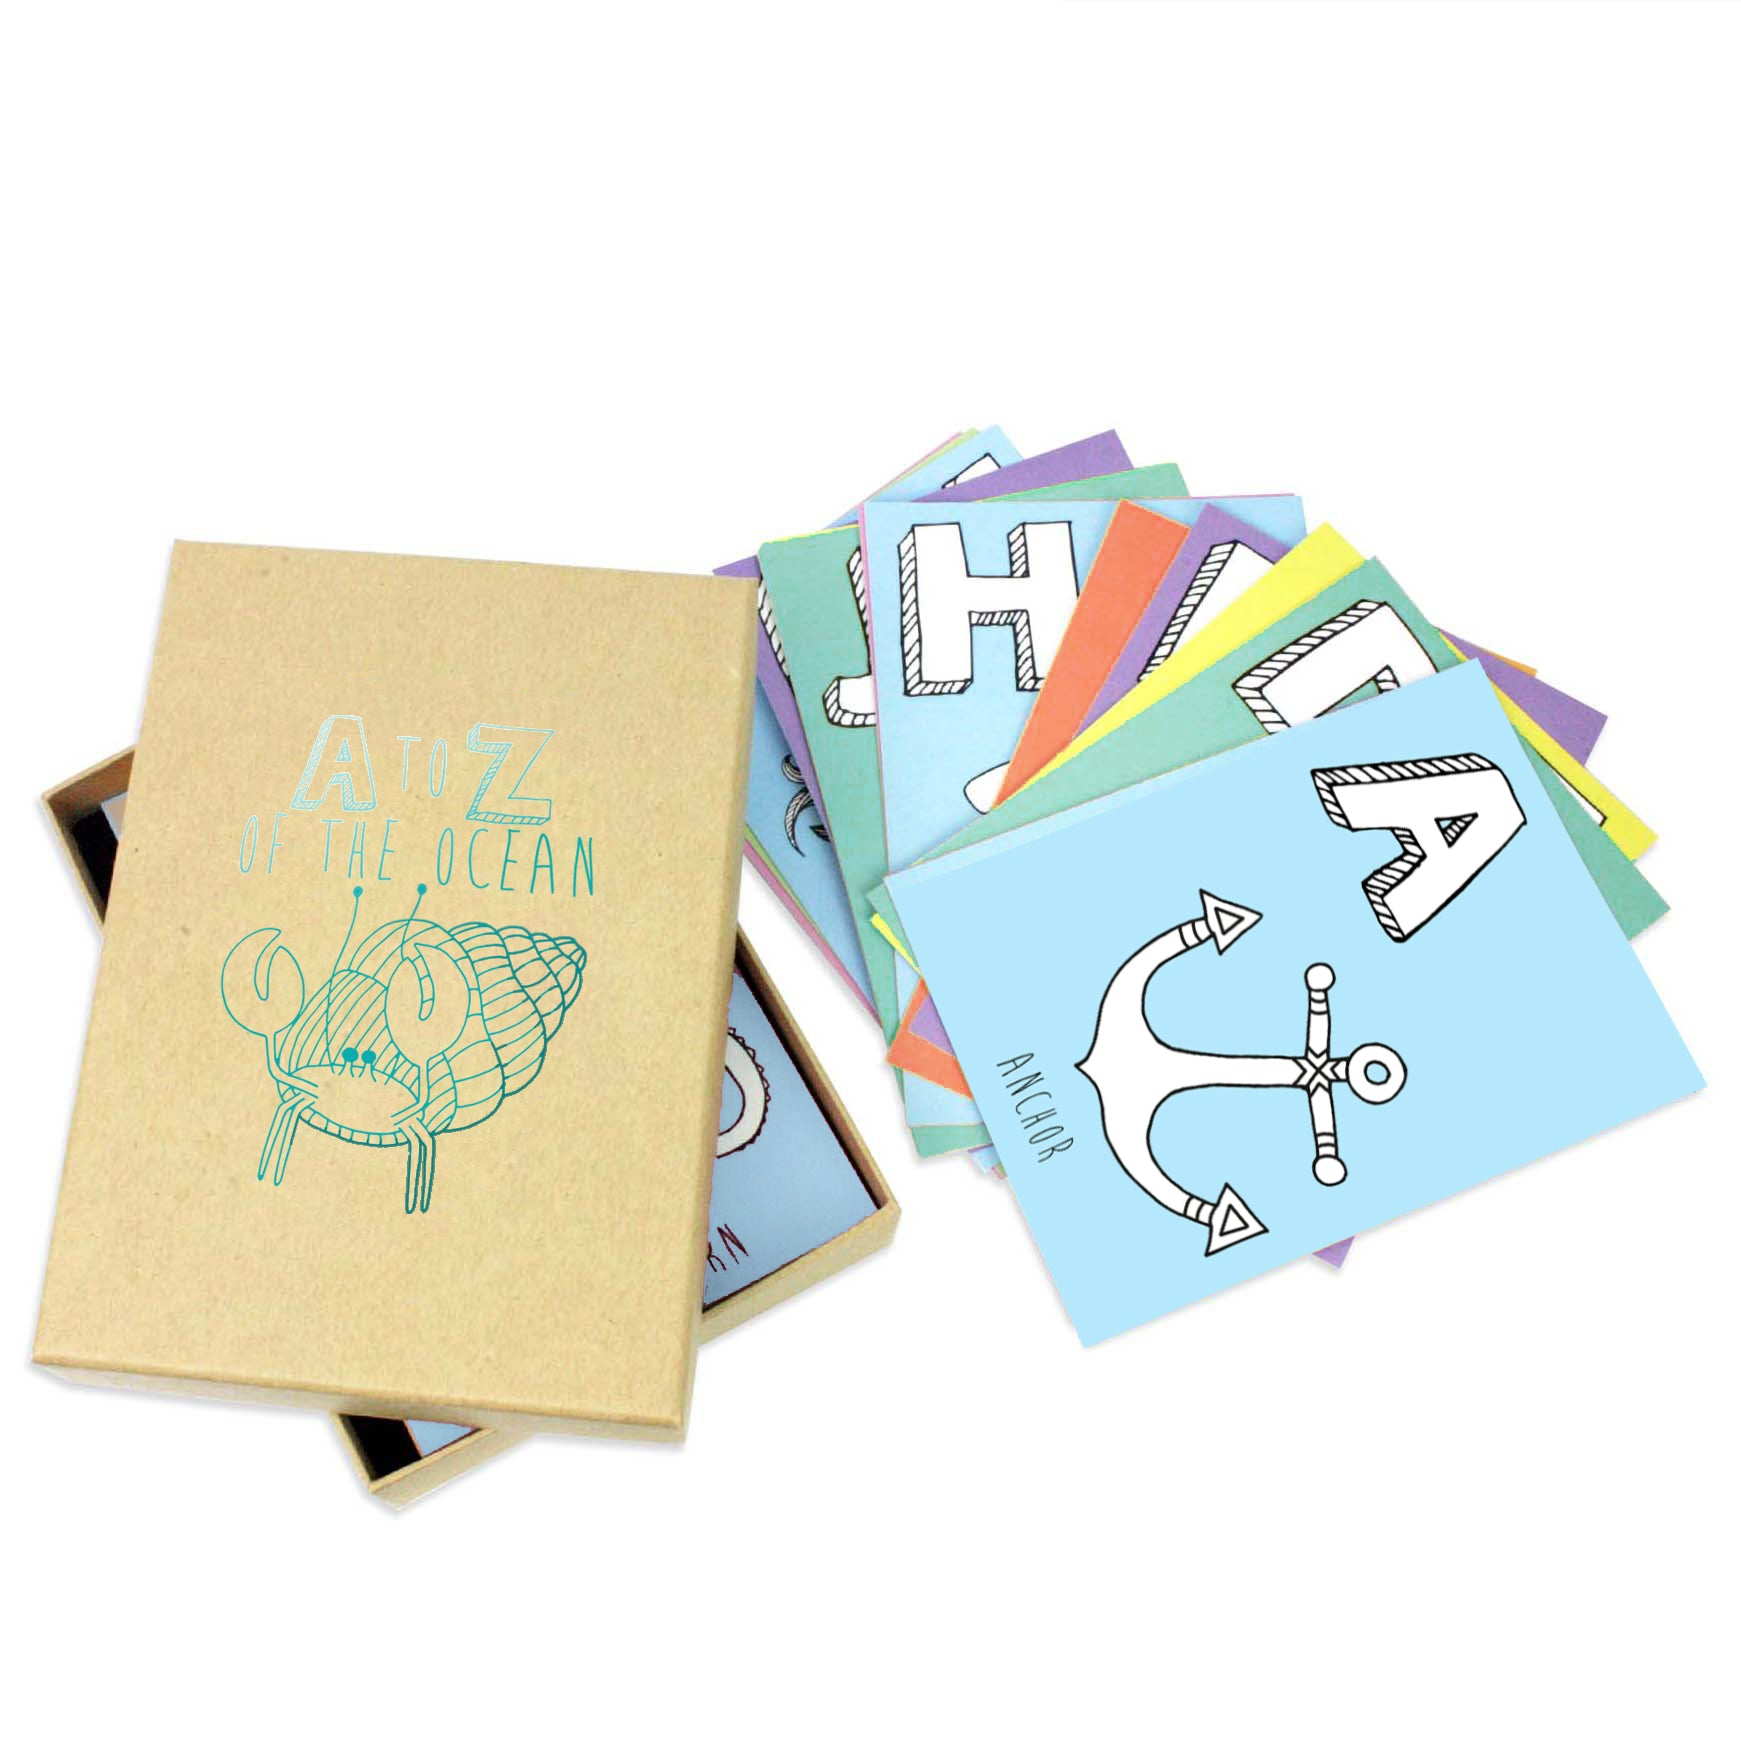 Set of 26 ocean alphabet postcards in a brown box